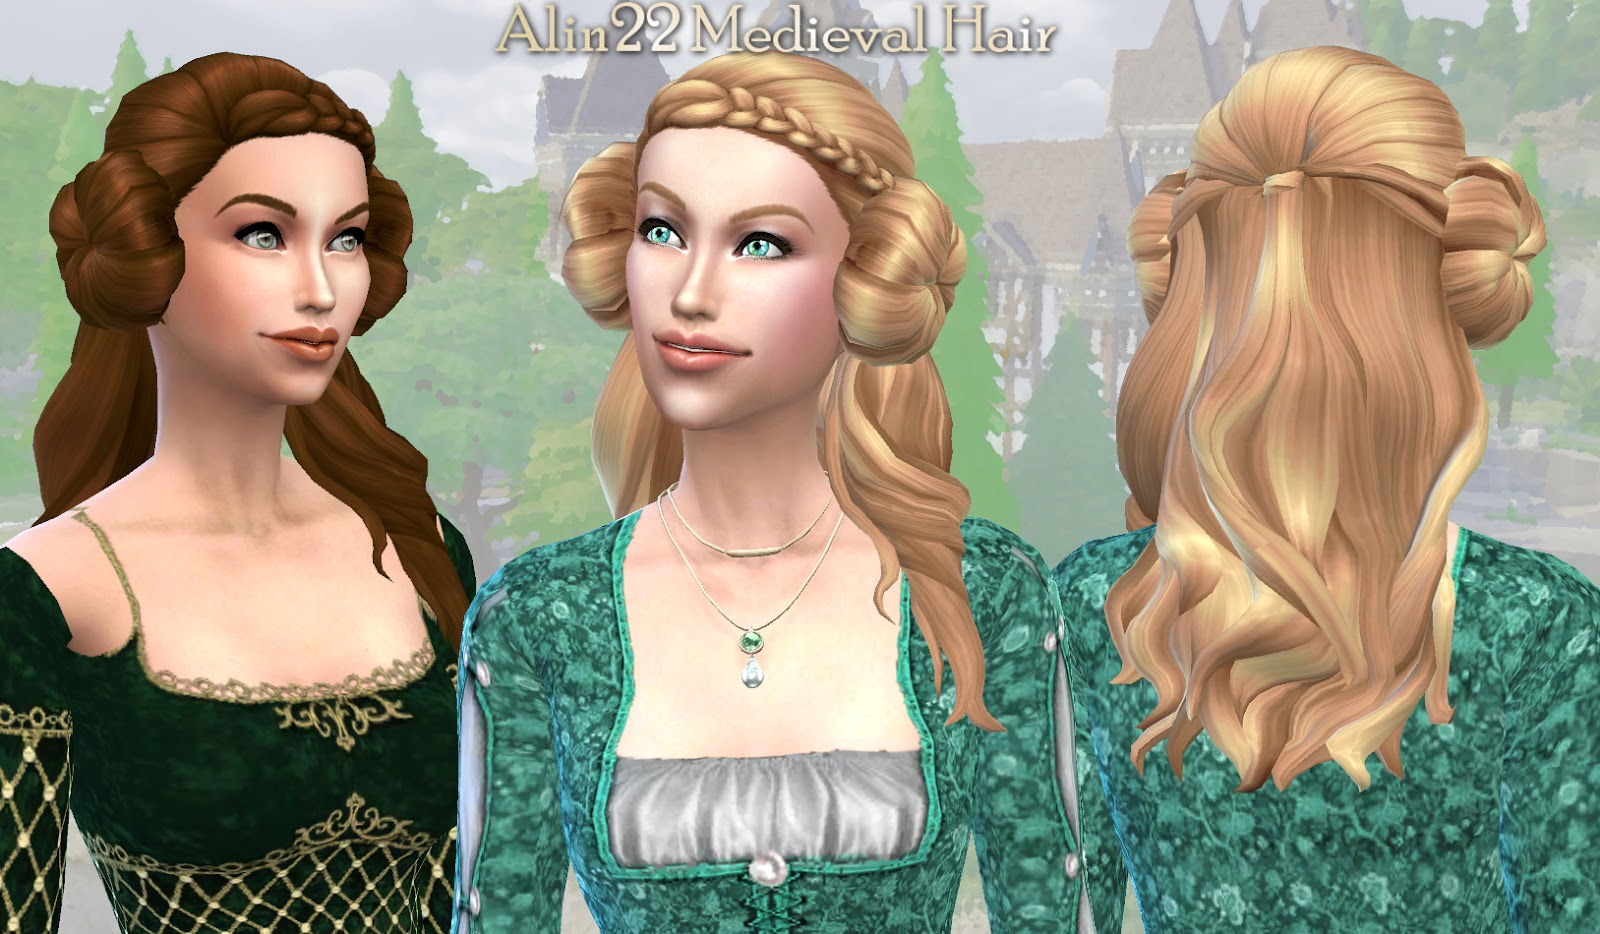 The sims 4 hair accessories - Medieval Long Hair With Buns Metallic Hairnets Accessory